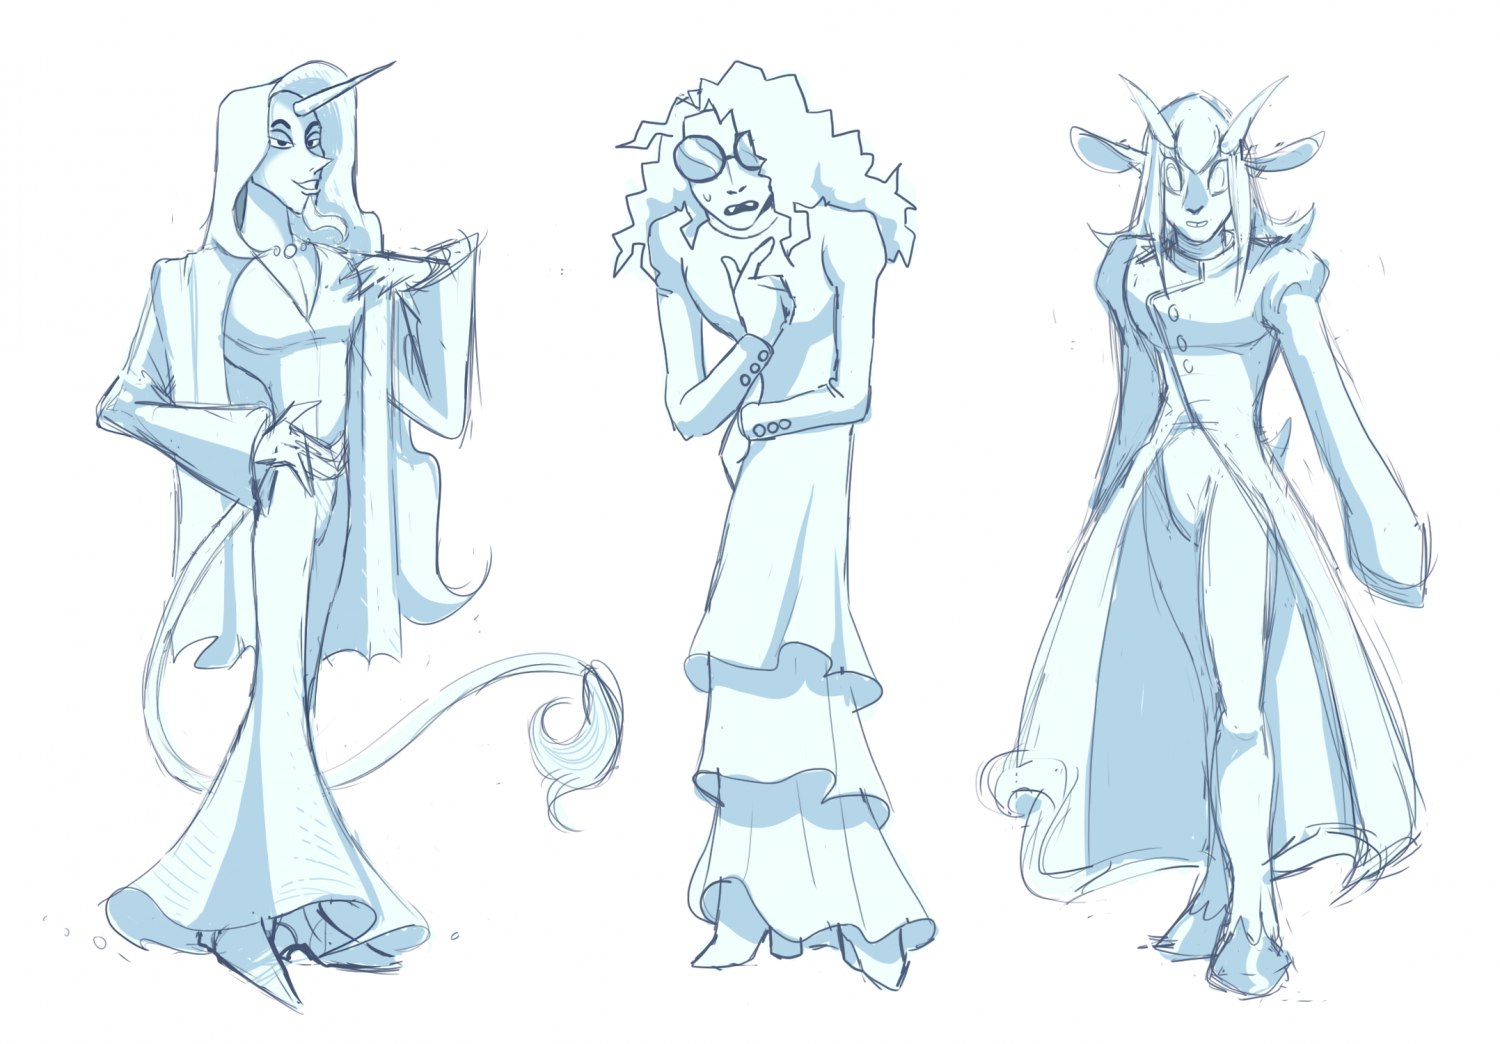 Character concept sketches for a wizard.